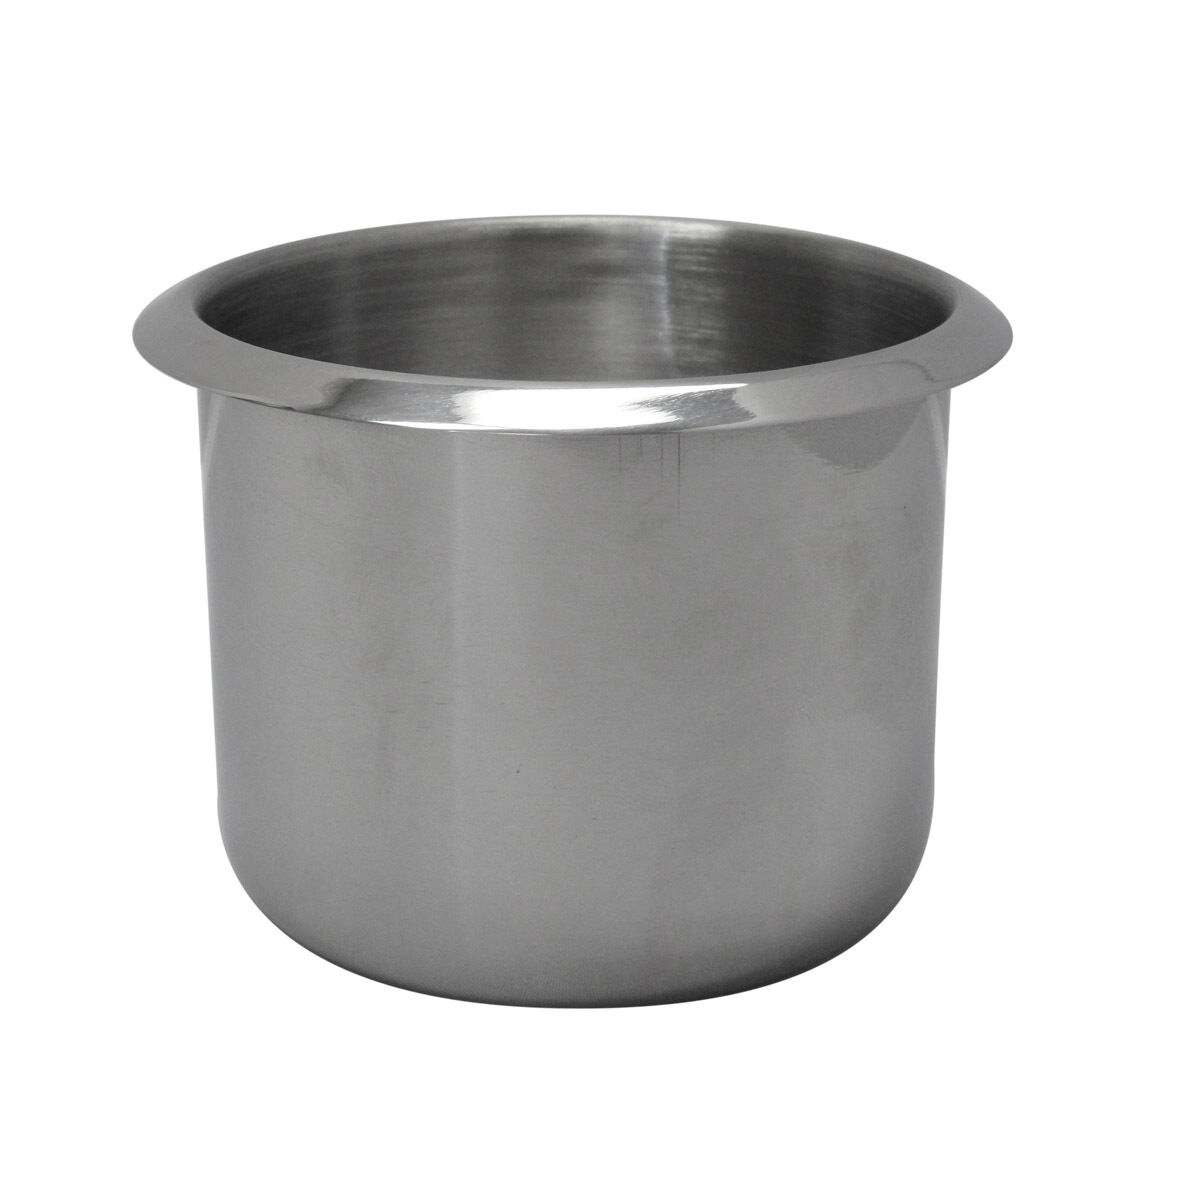 1 PC STAINLESS STEEL POKER TABLE CUP HOLDER REGULAR SIZE (1pc) 1 Of 1FREE  Shipping See More